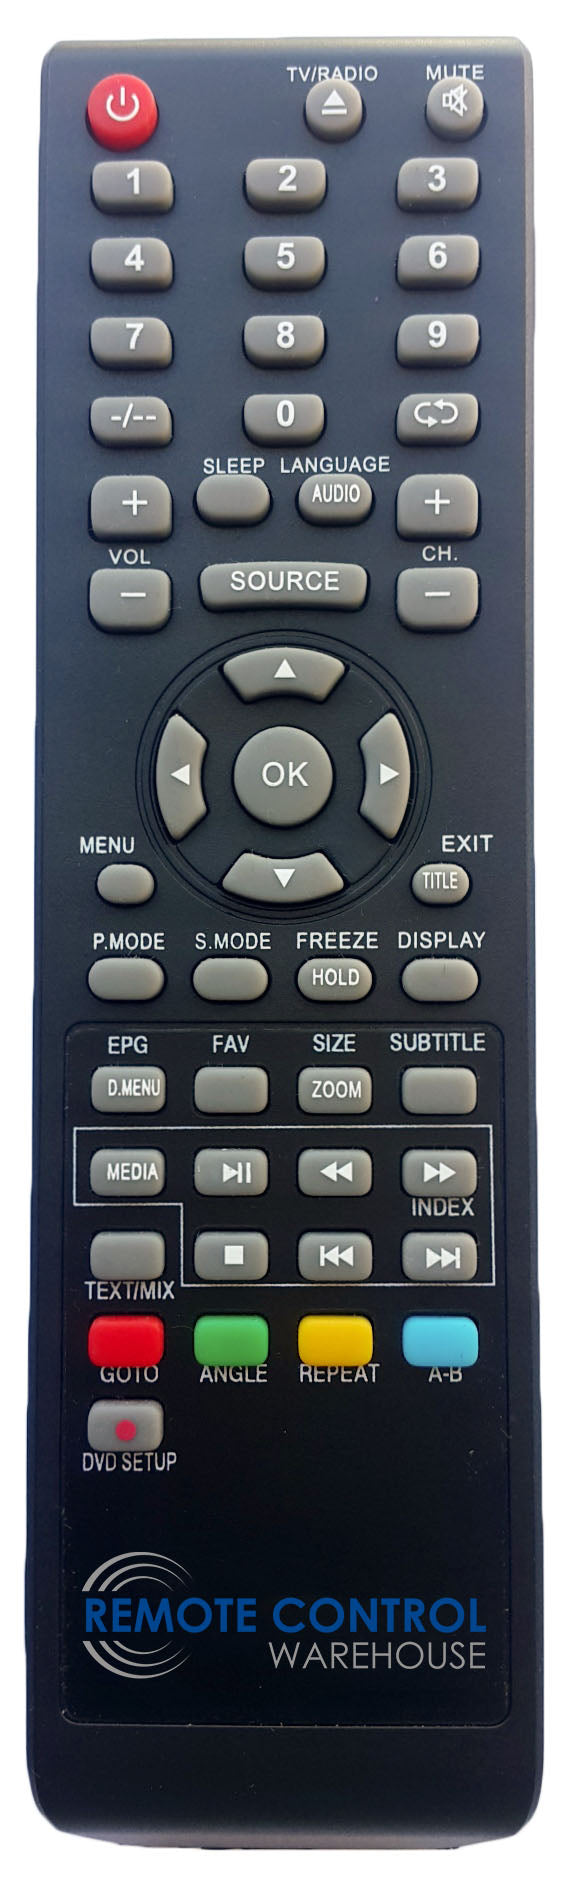 REPLACEMENT VIVID REMOTE CONTROL - AT-32HD1 AT32HD1 LCD TV - Remote Control Warehouse